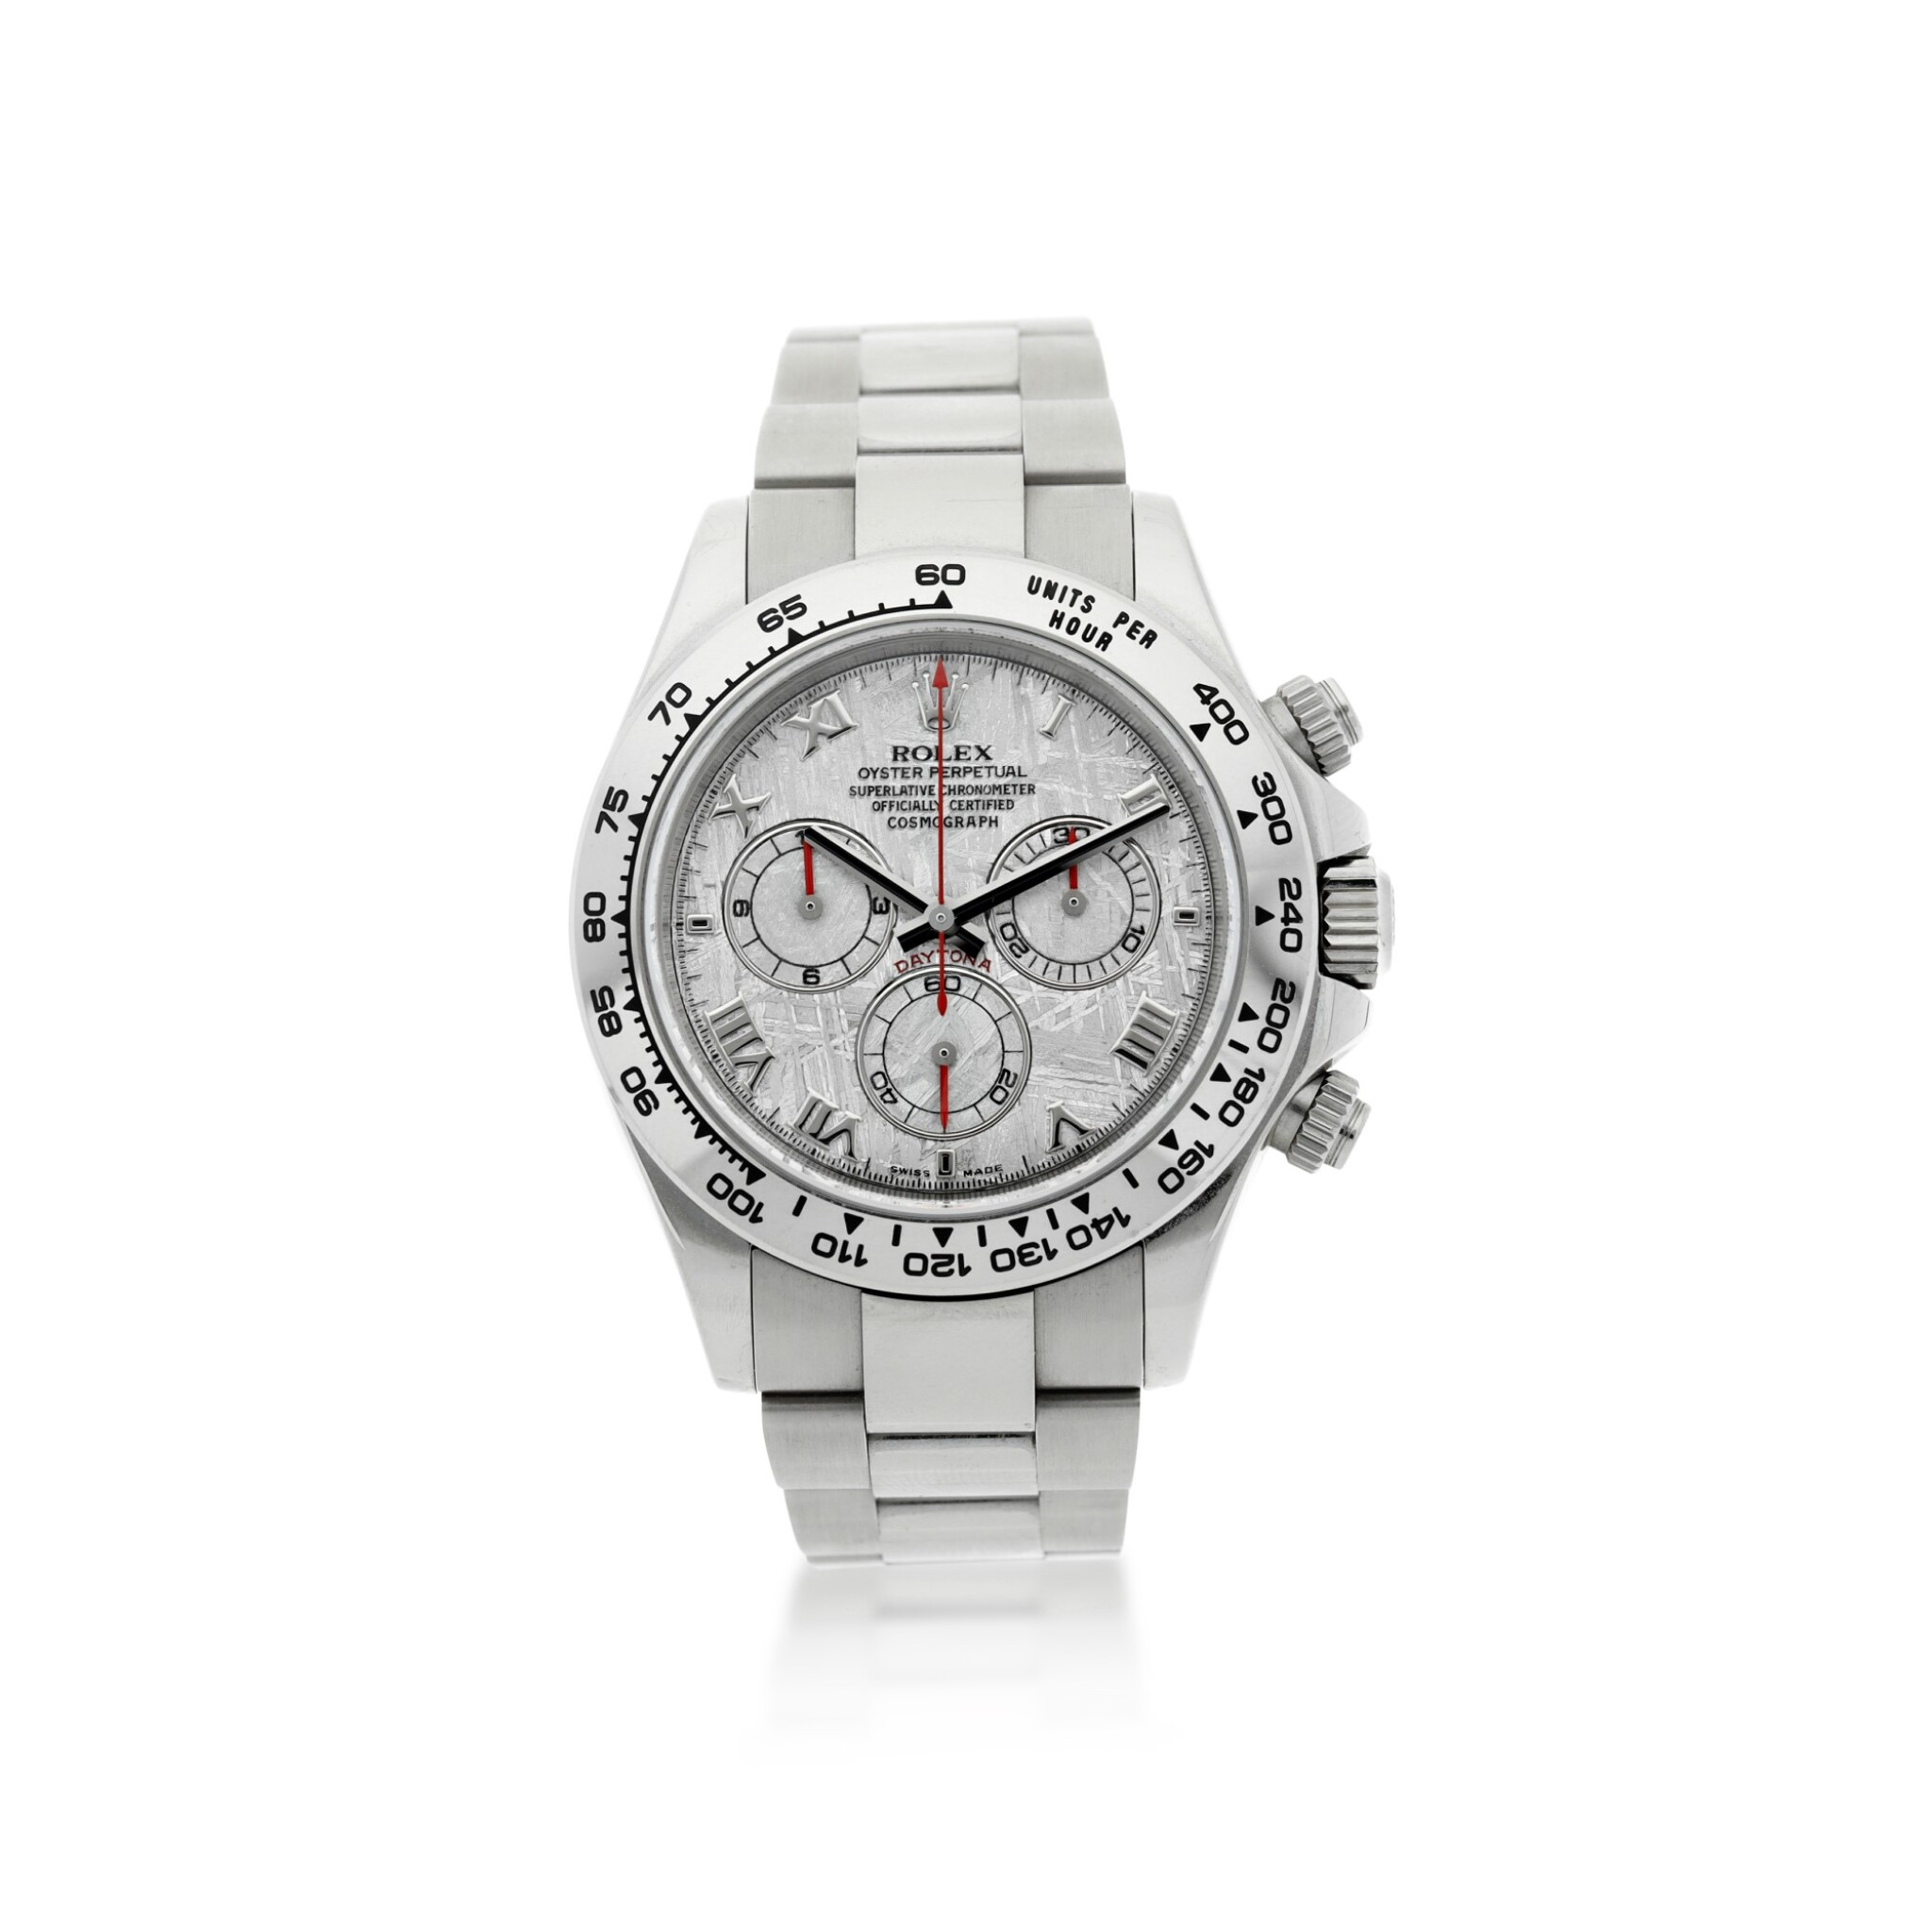 View full screen - View 1 of Lot 8. REFERENCE 116509 DAYTONA A WHITE GOLD AUTOMATIC CHRONOGRAPH WRISTWATCH WITH METEORITE DIAL AND BRACELET, CIRCA 2003.